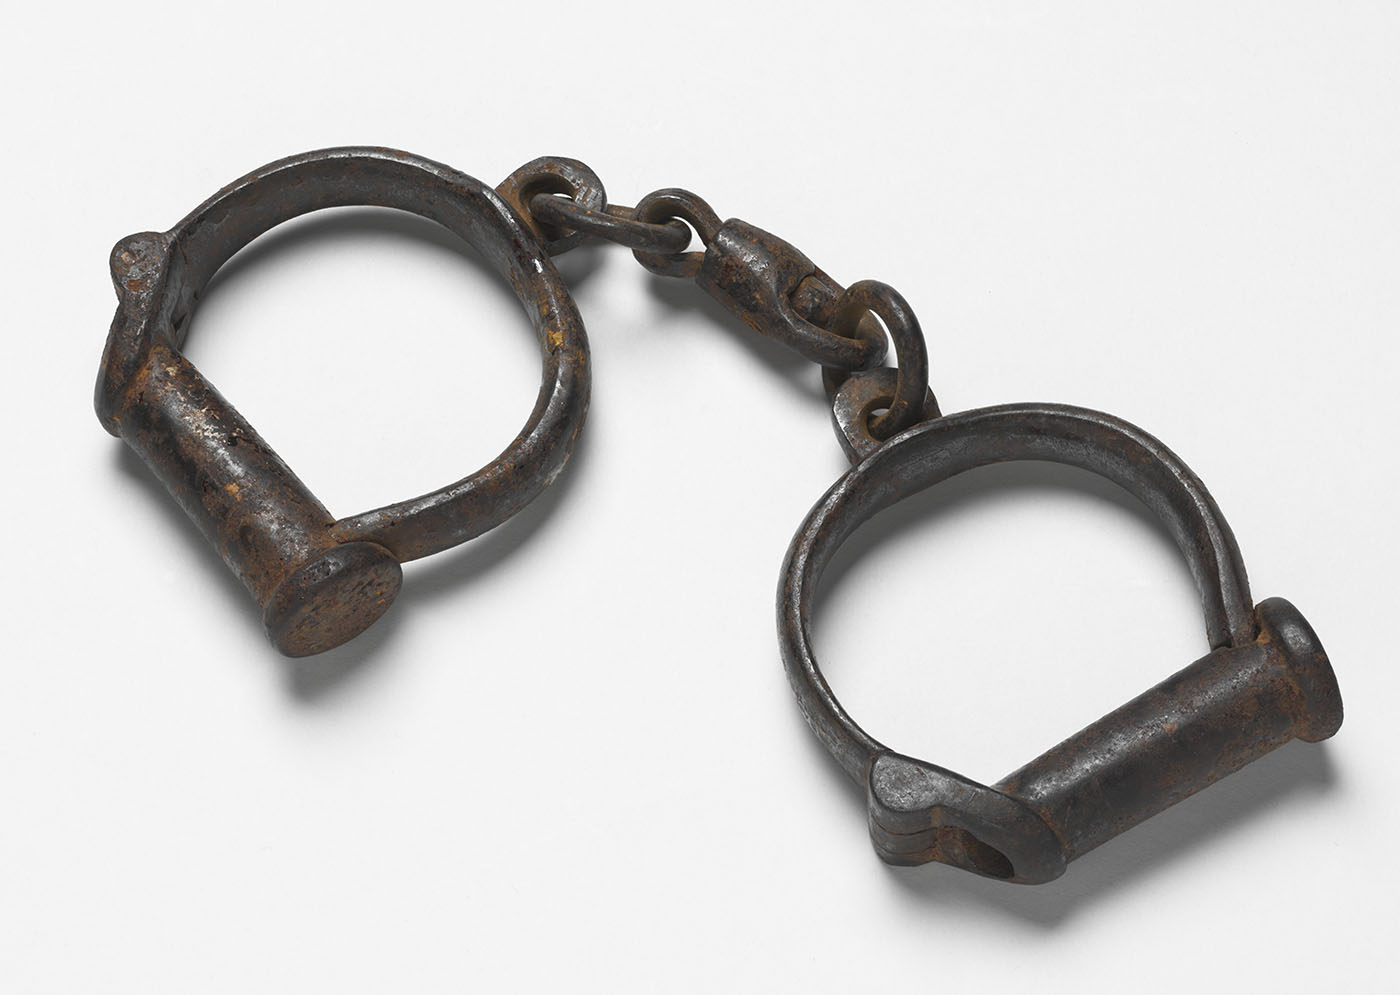 Metal hand cuffs. - click to view larger image